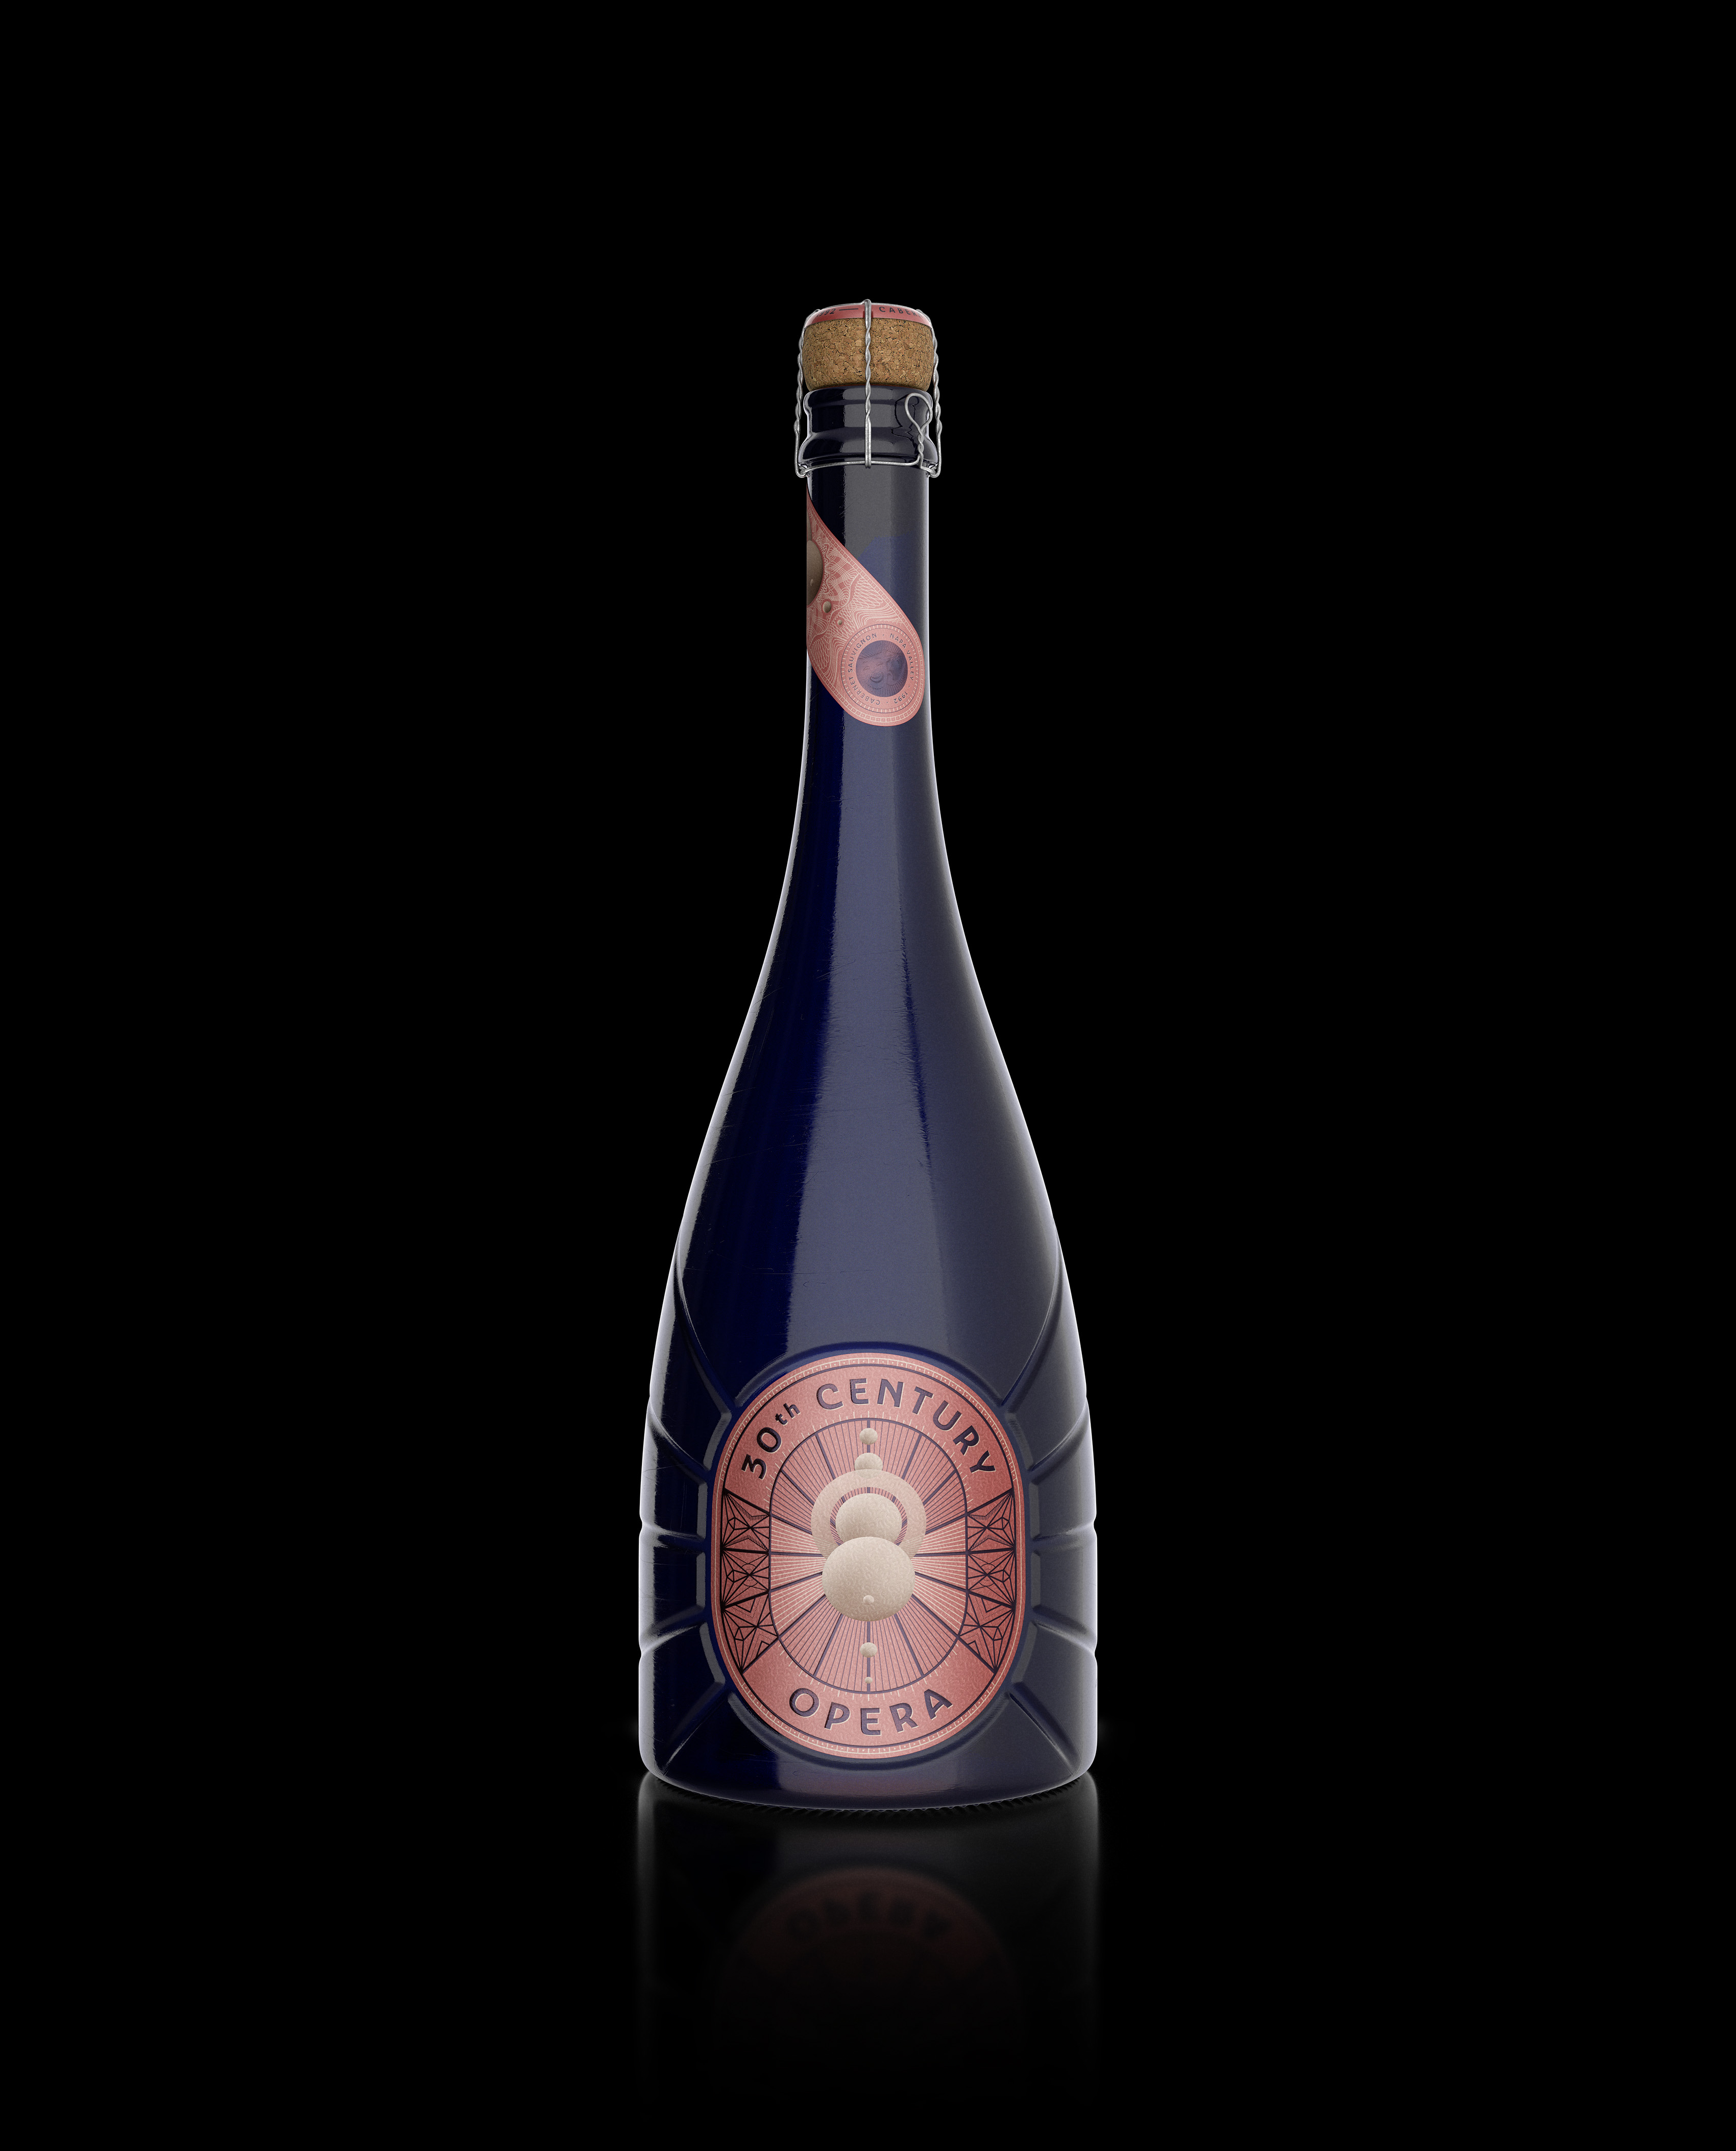 Creative Carbon Creates New Packaging for30th Century Opera Wine